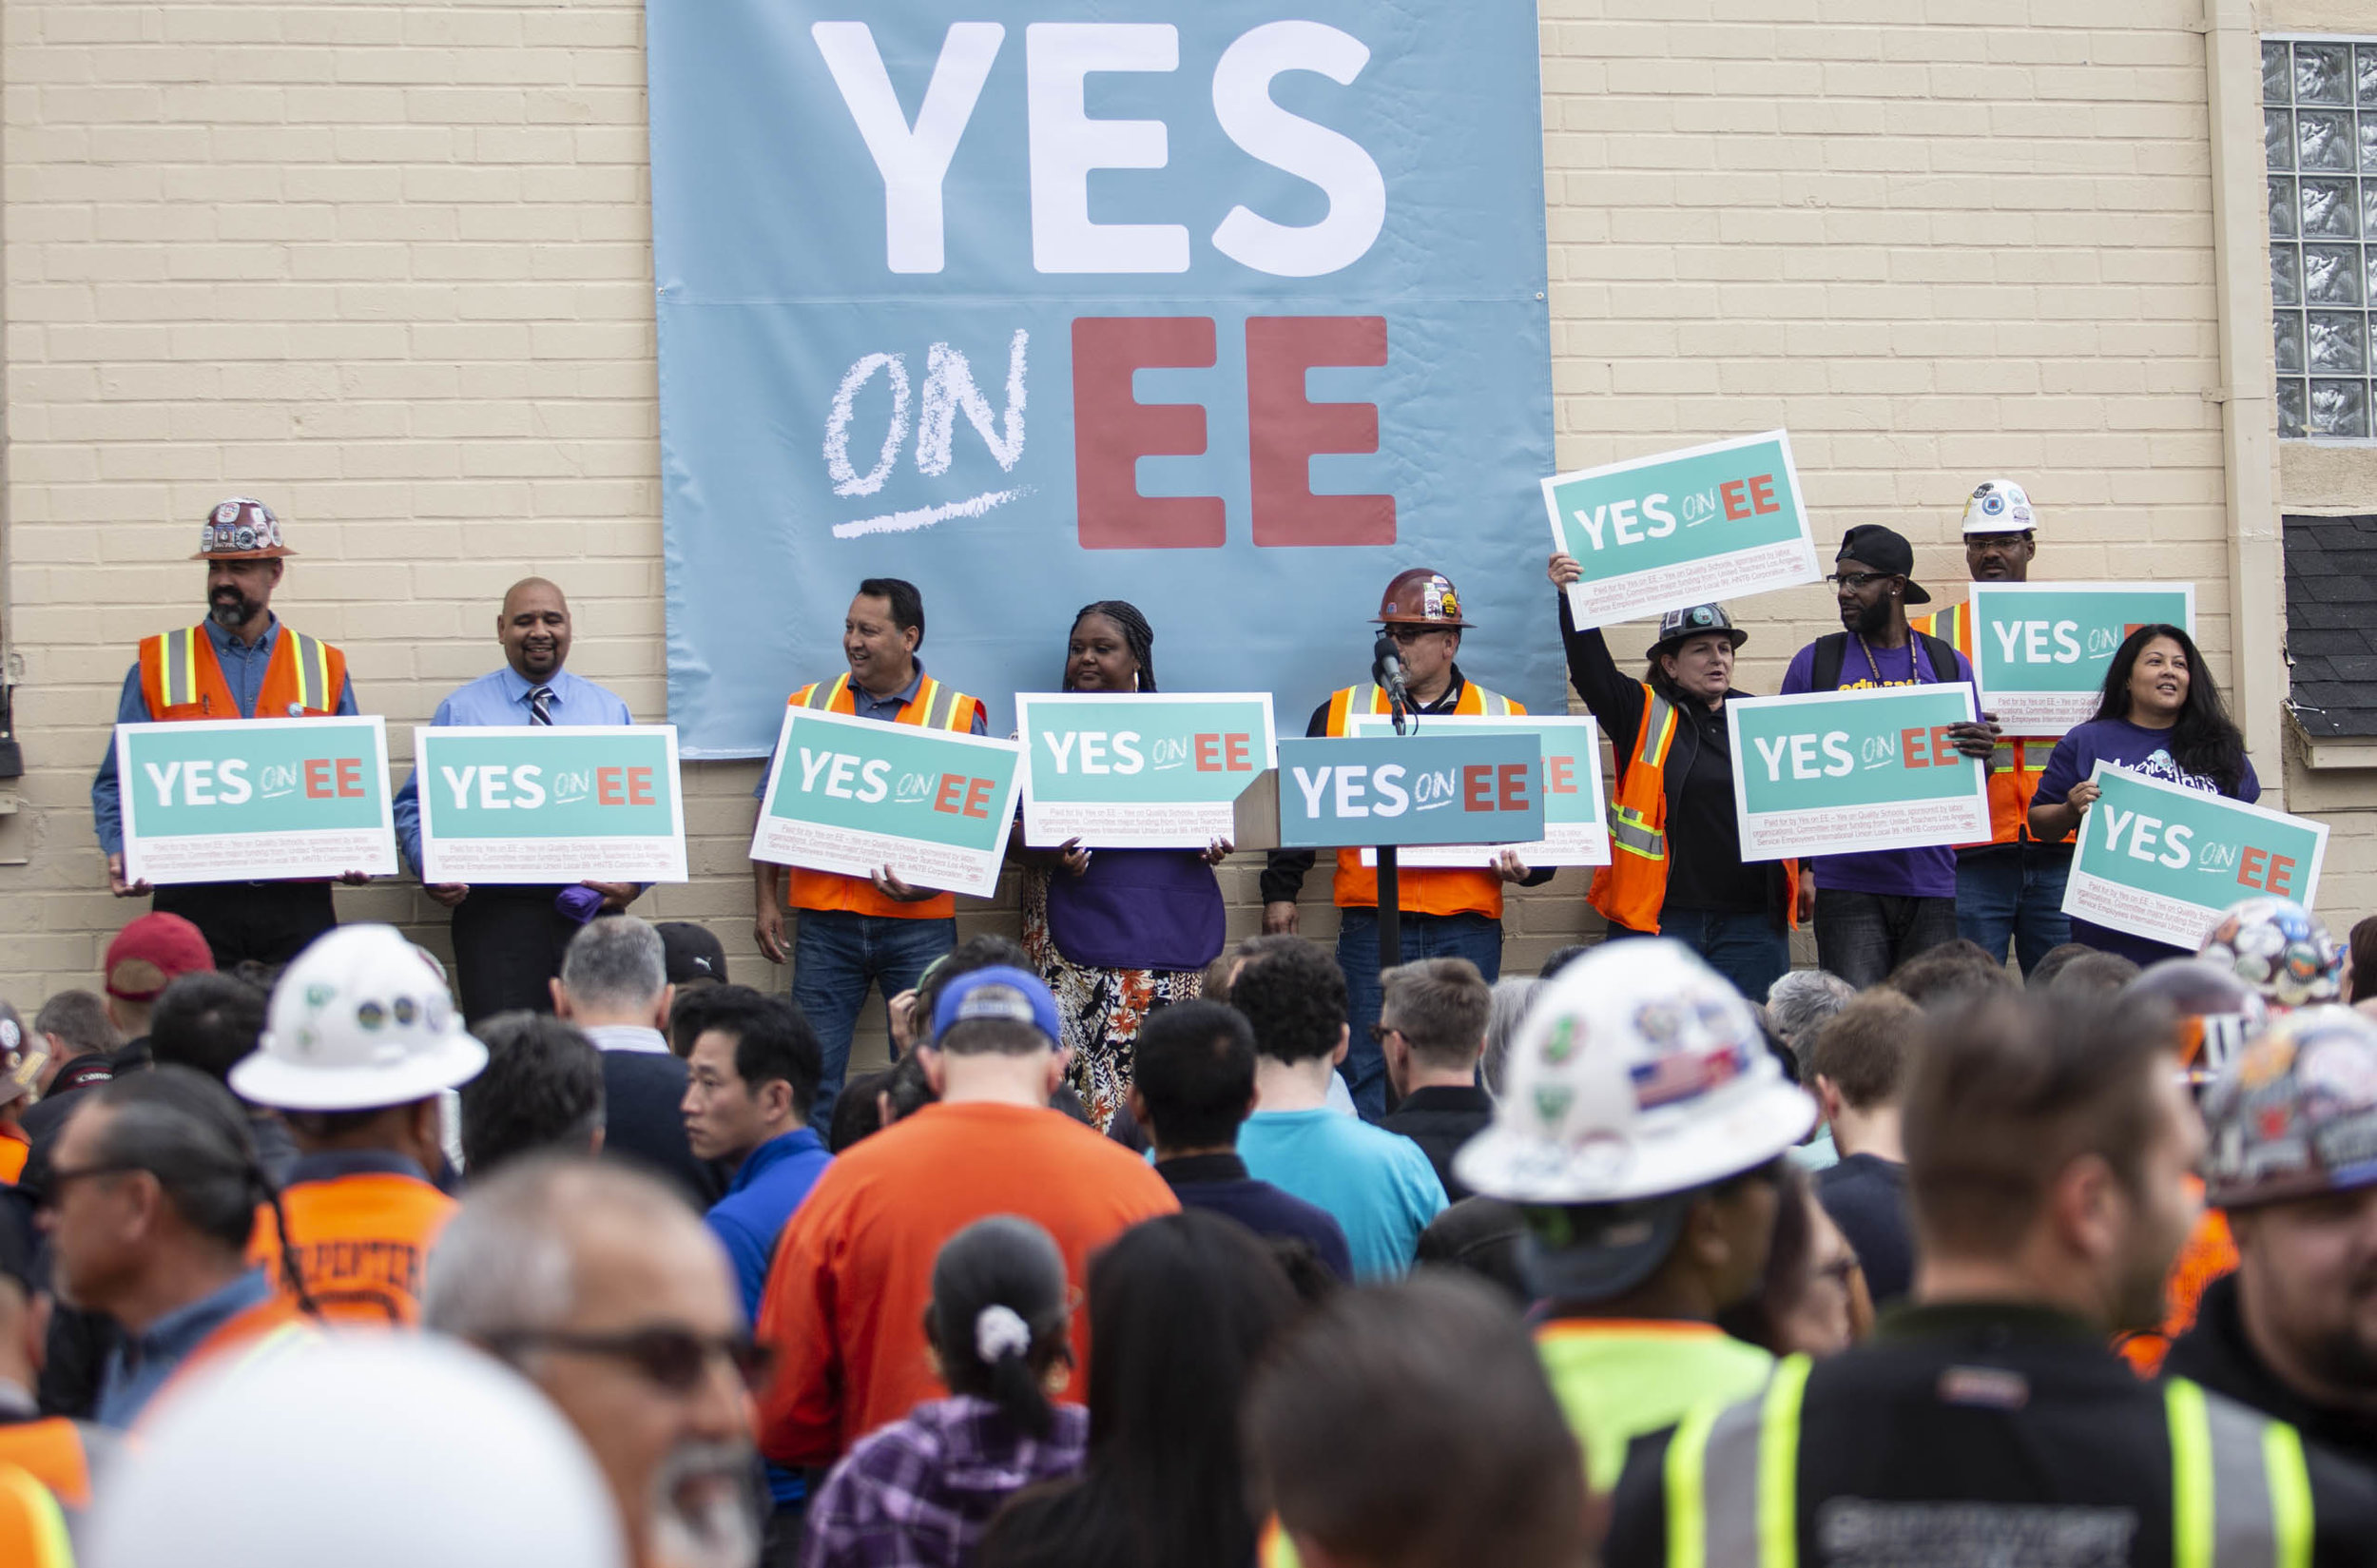 Union representatives and supporters during the rally in support of Mayor Pete Buttigieg for his 2020 presidential campaign on Thursday May 9, 2019 in Los Angeles, Calif. (Yasamin Jtehrani / The Corsair)